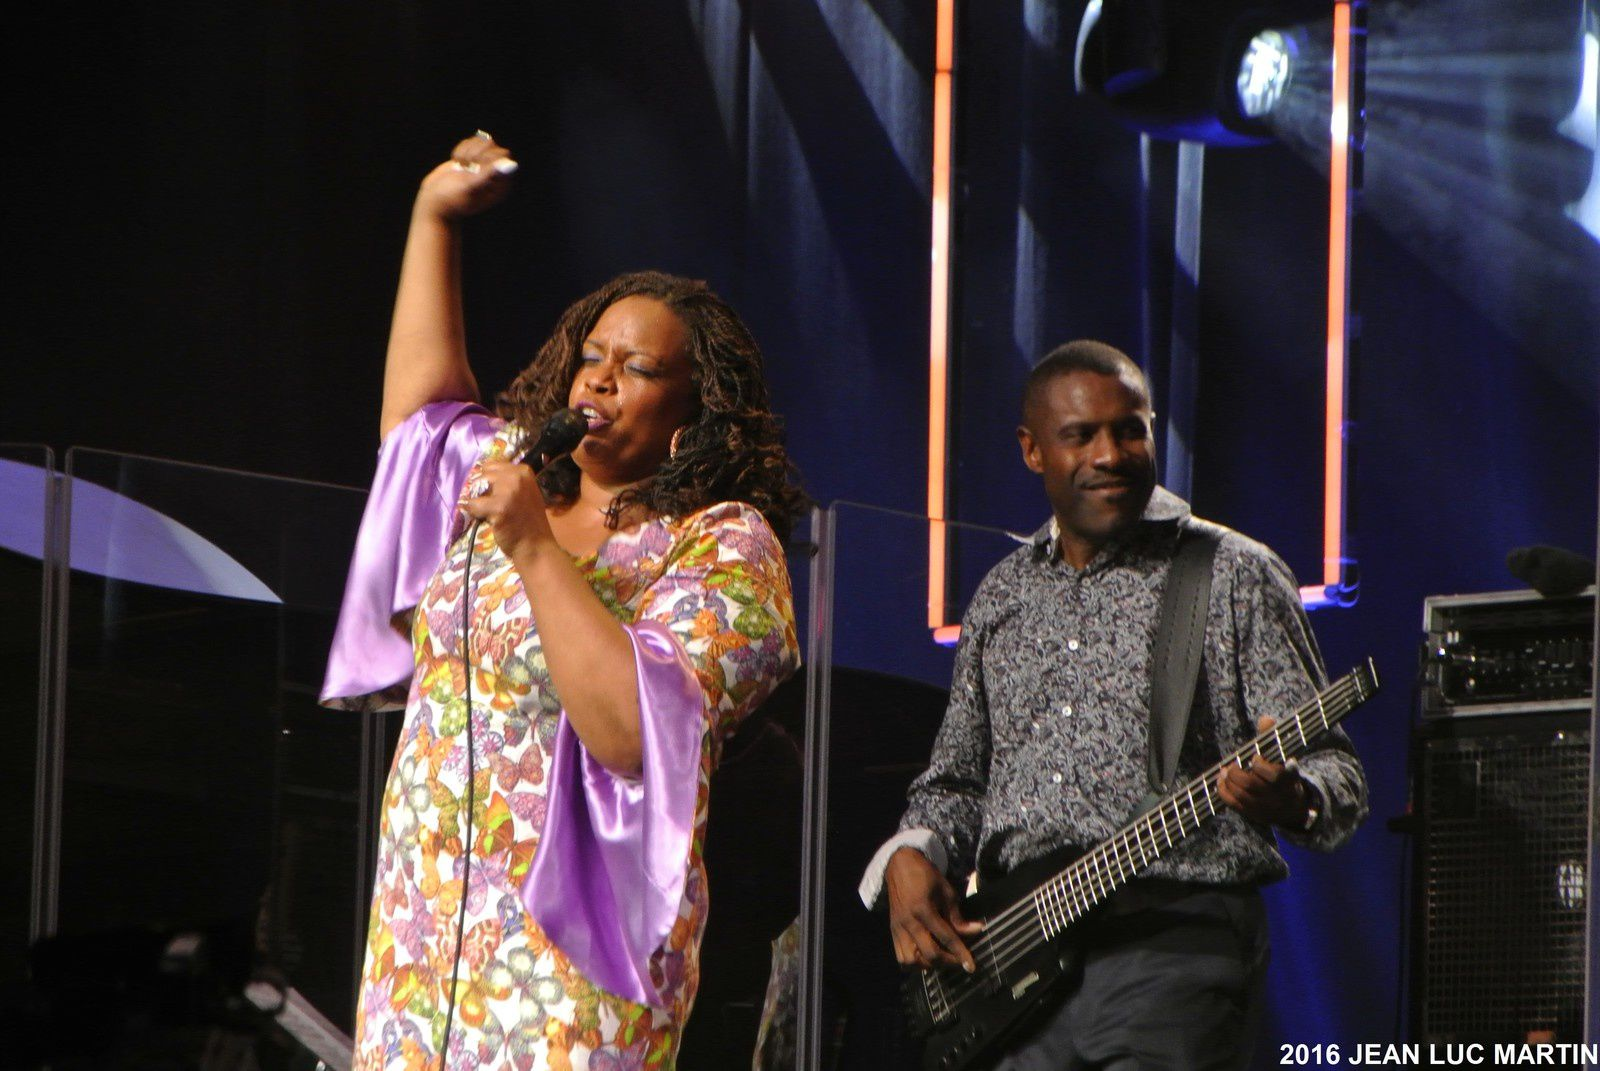 DIANNE REEVES A MARCIAC LE 9/08/2016